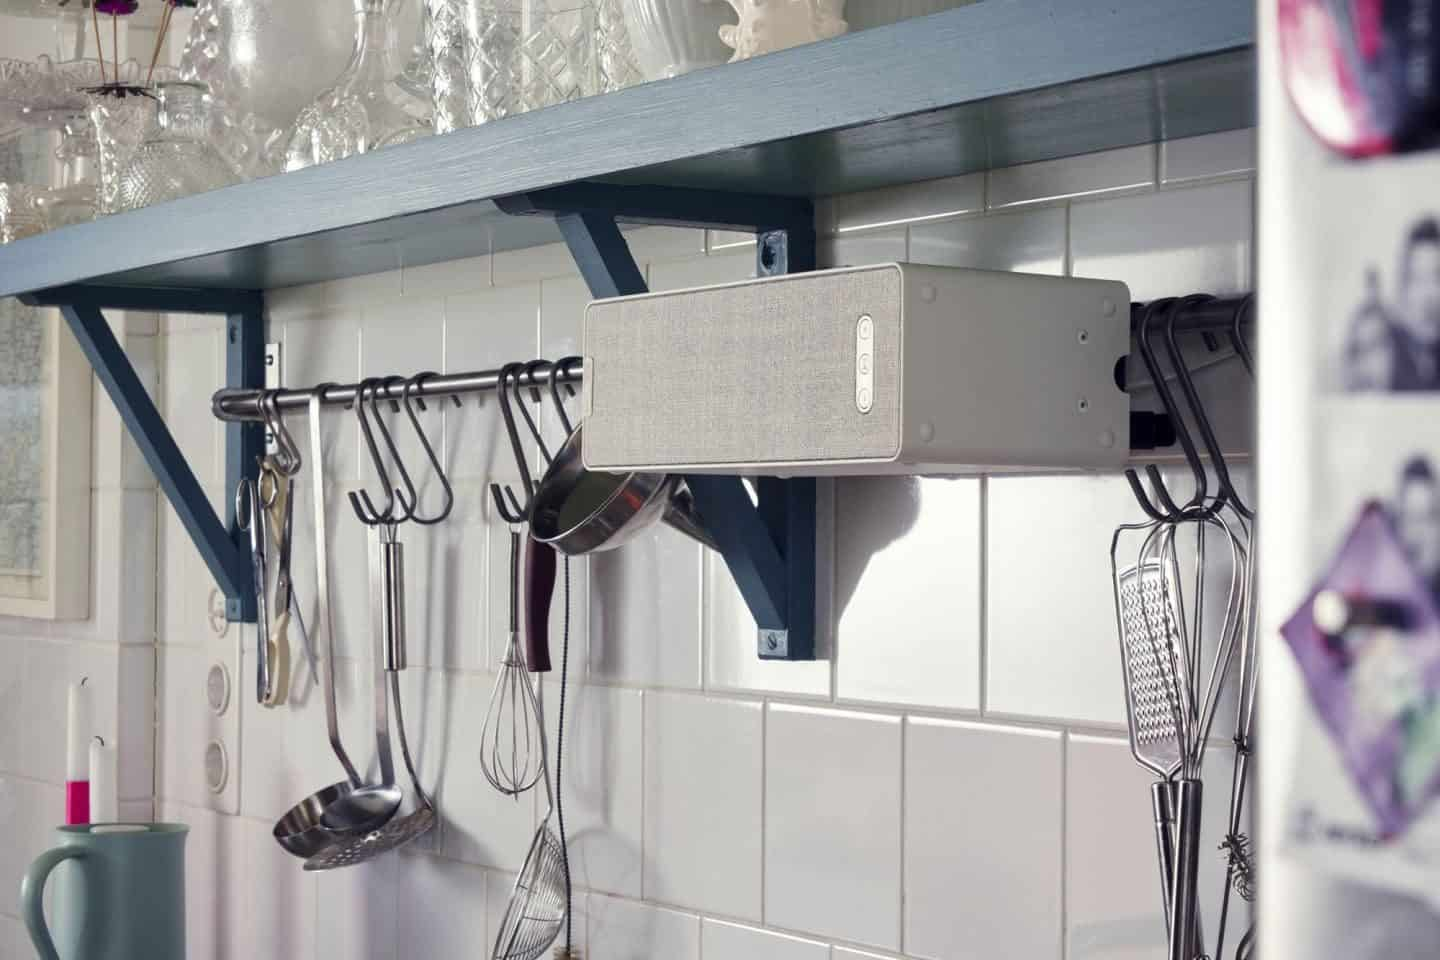 Symfonisk speakers by IKEA and SONOS can be wall mounted in the kitchen